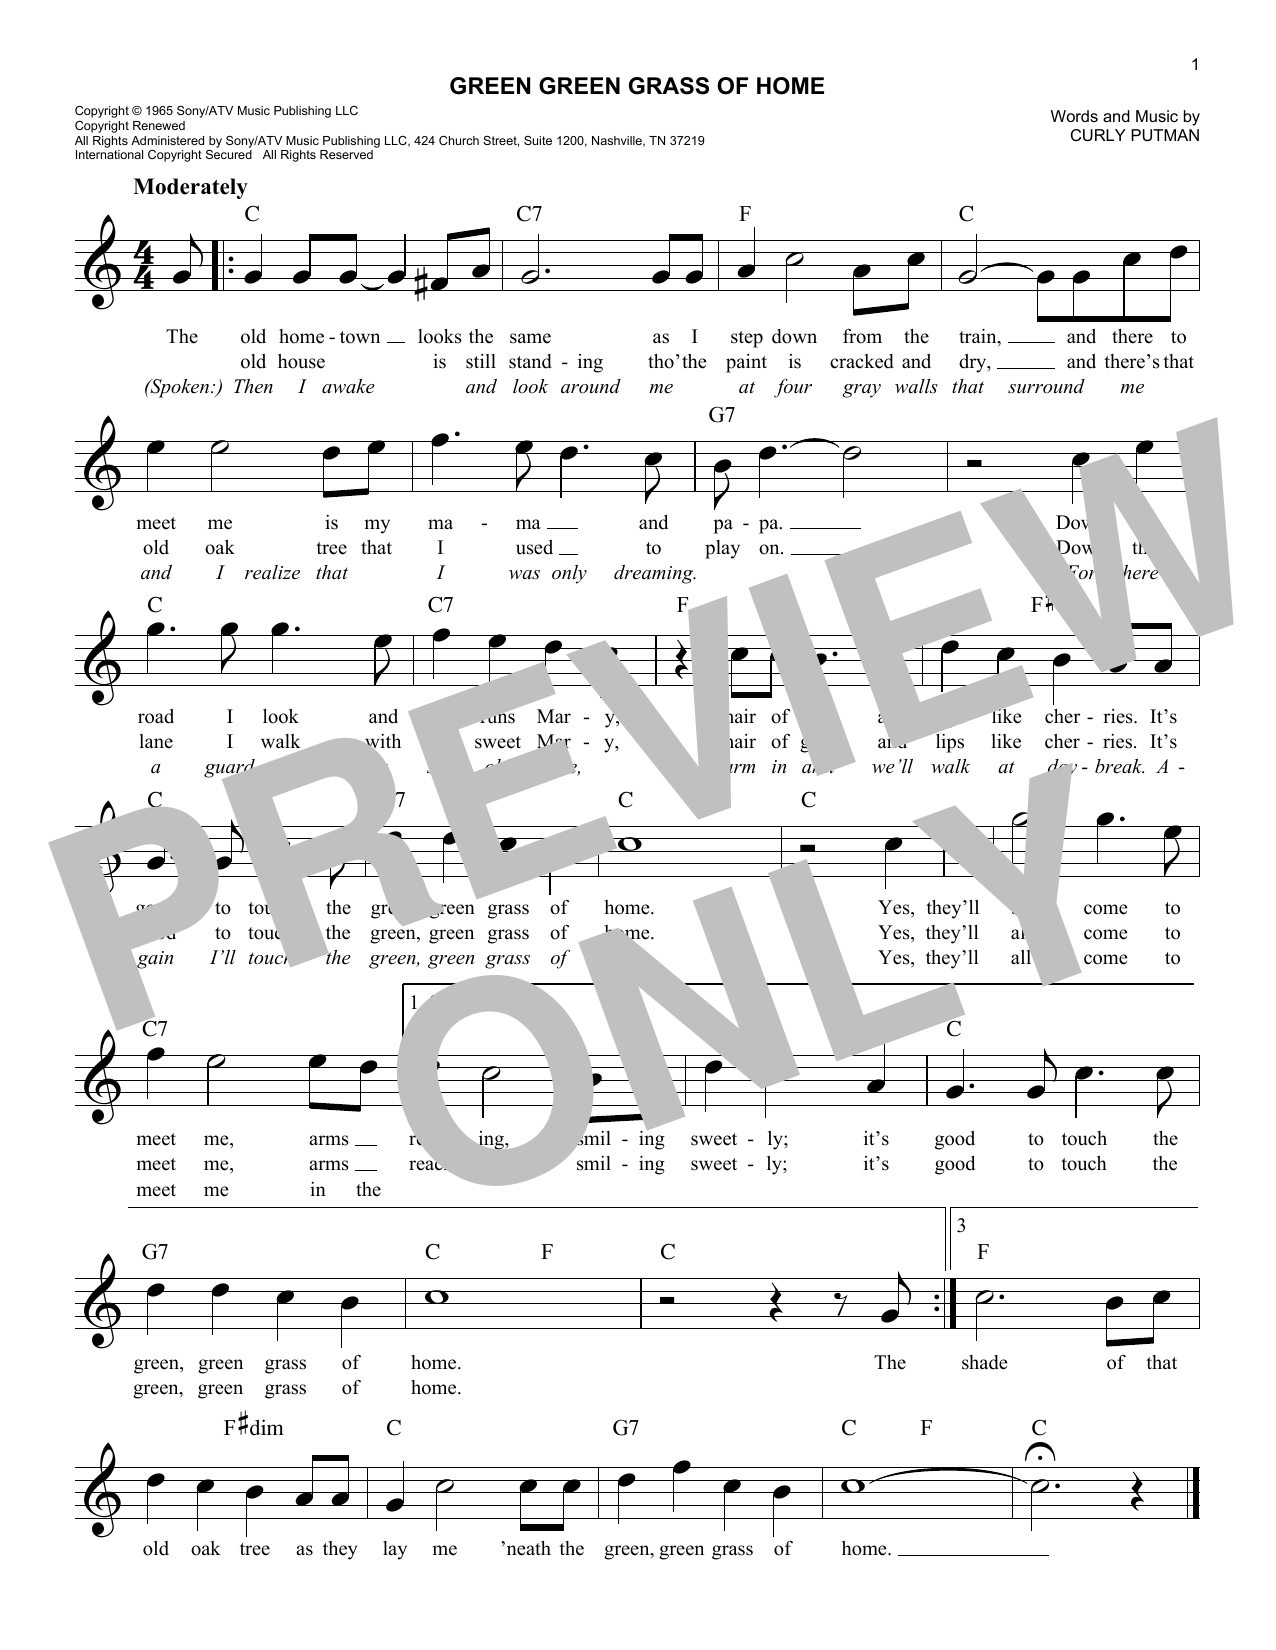 Tom Jones Green Green Grass Of Home sheet music notes and chords. Download Printable PDF.